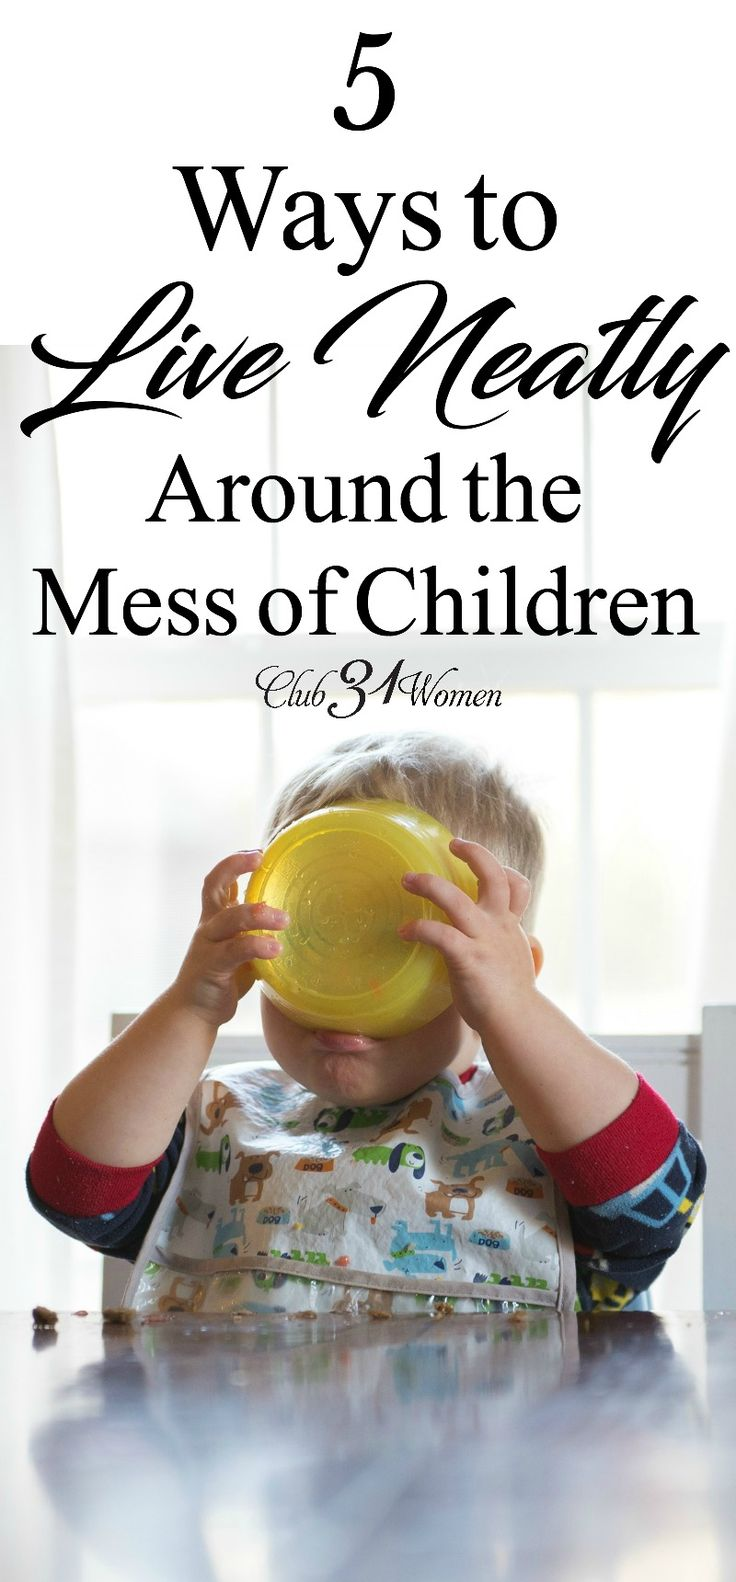 Having children can wreak havoc on a clean home, no doubt. So how can we keep up with the mess so we aren't constantly living in